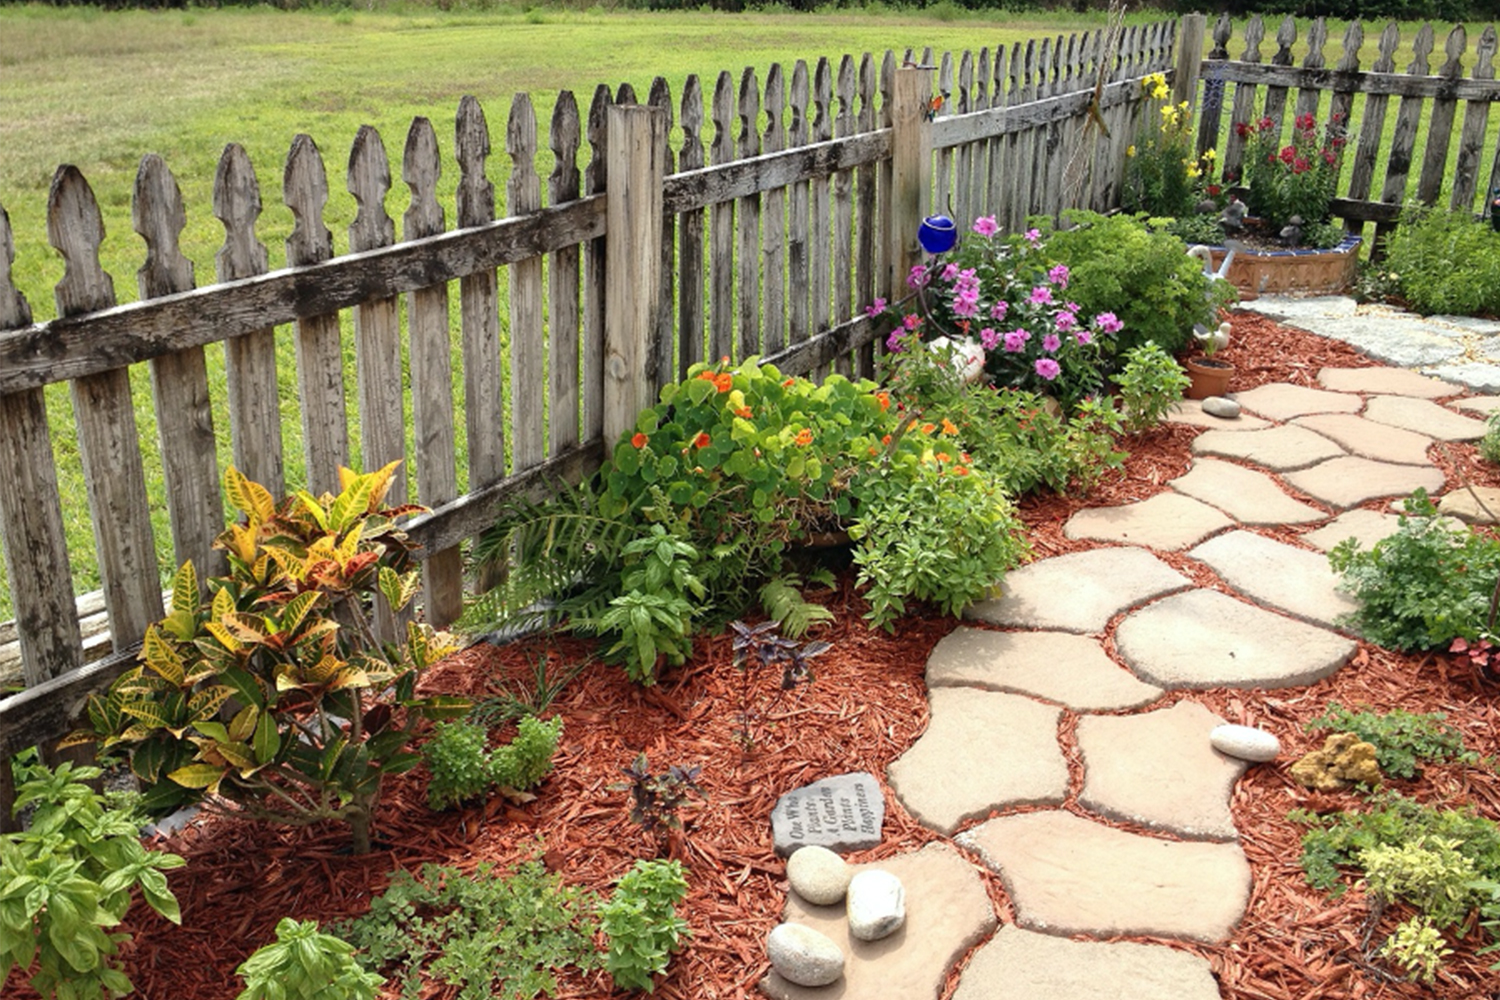 Top tips for making small improvements to your outdoor space